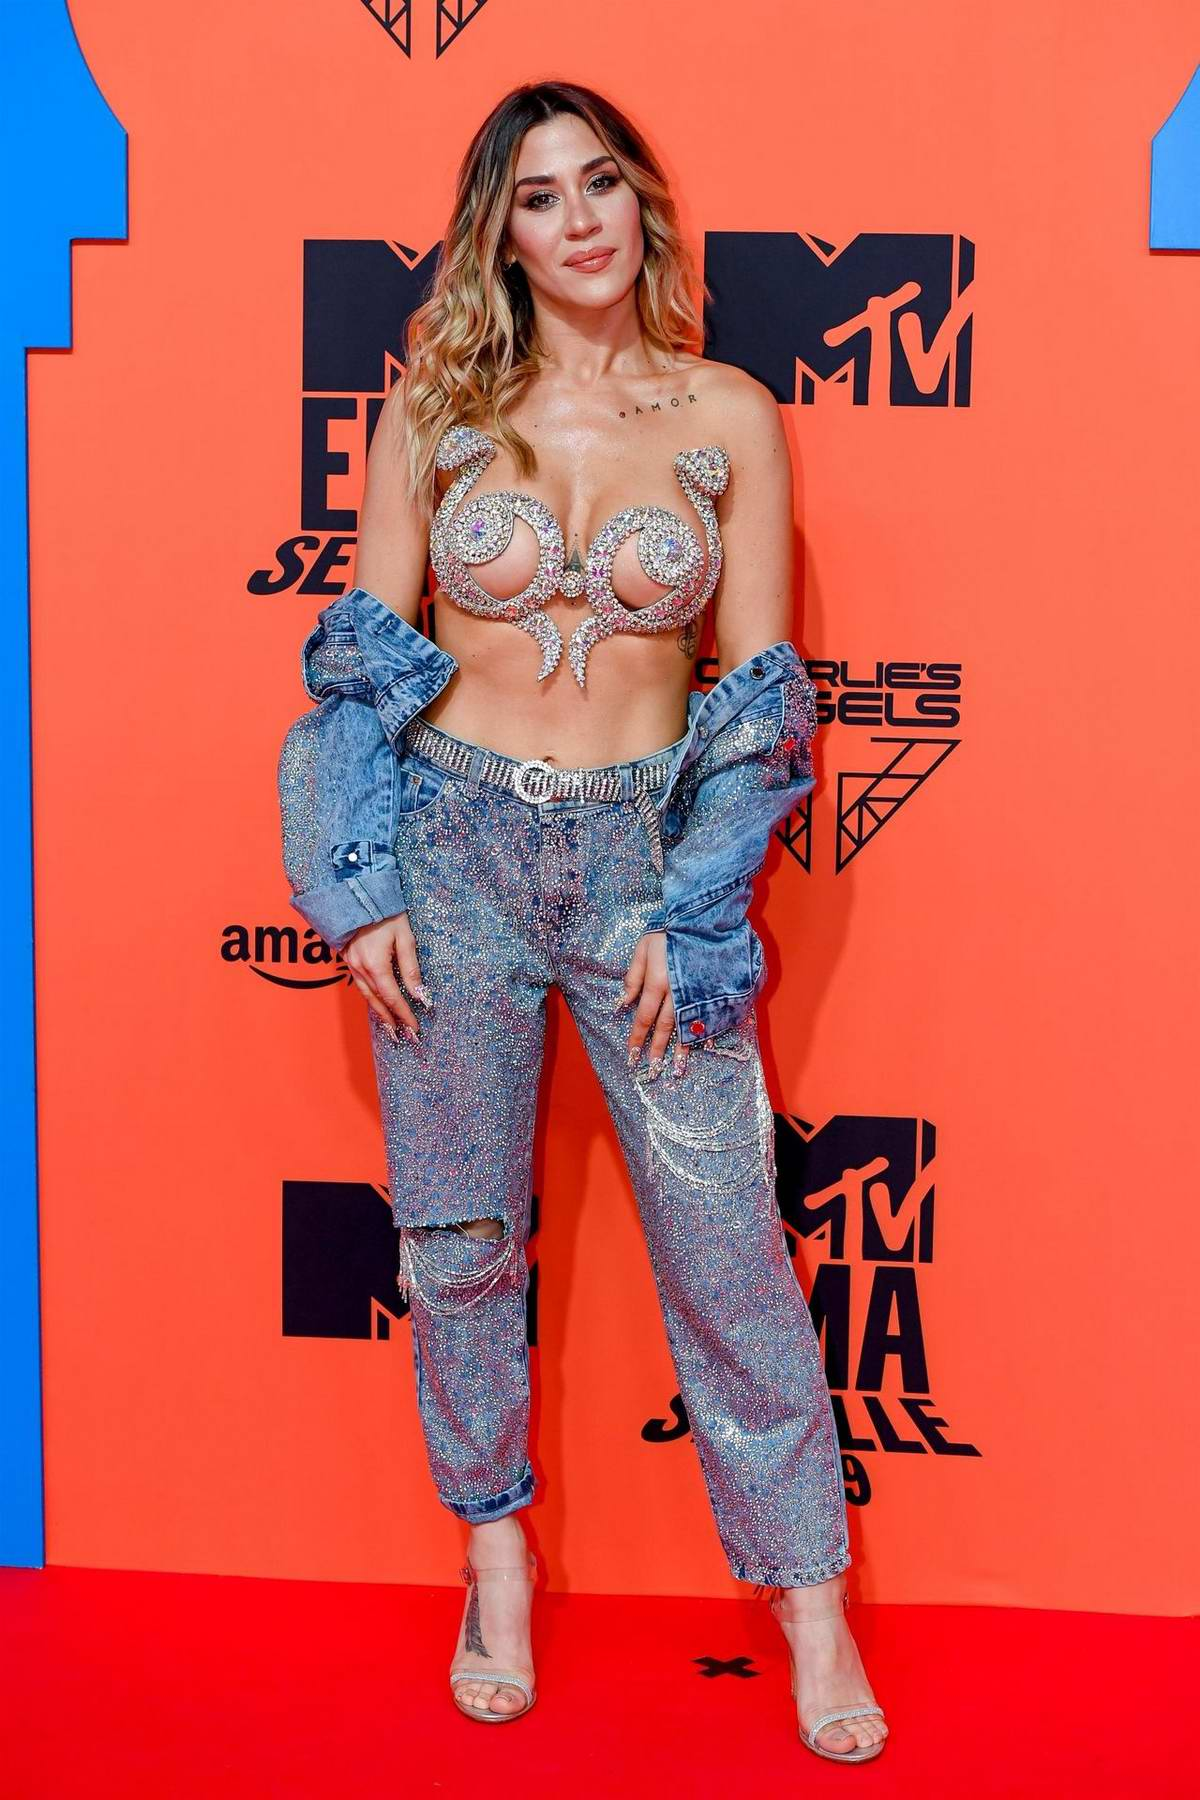 Jimena 'J Mena' Baron attends the MTV Europe Music Awards 2019 at FIBES Conference and Exhibition Centre in Seville, Spain